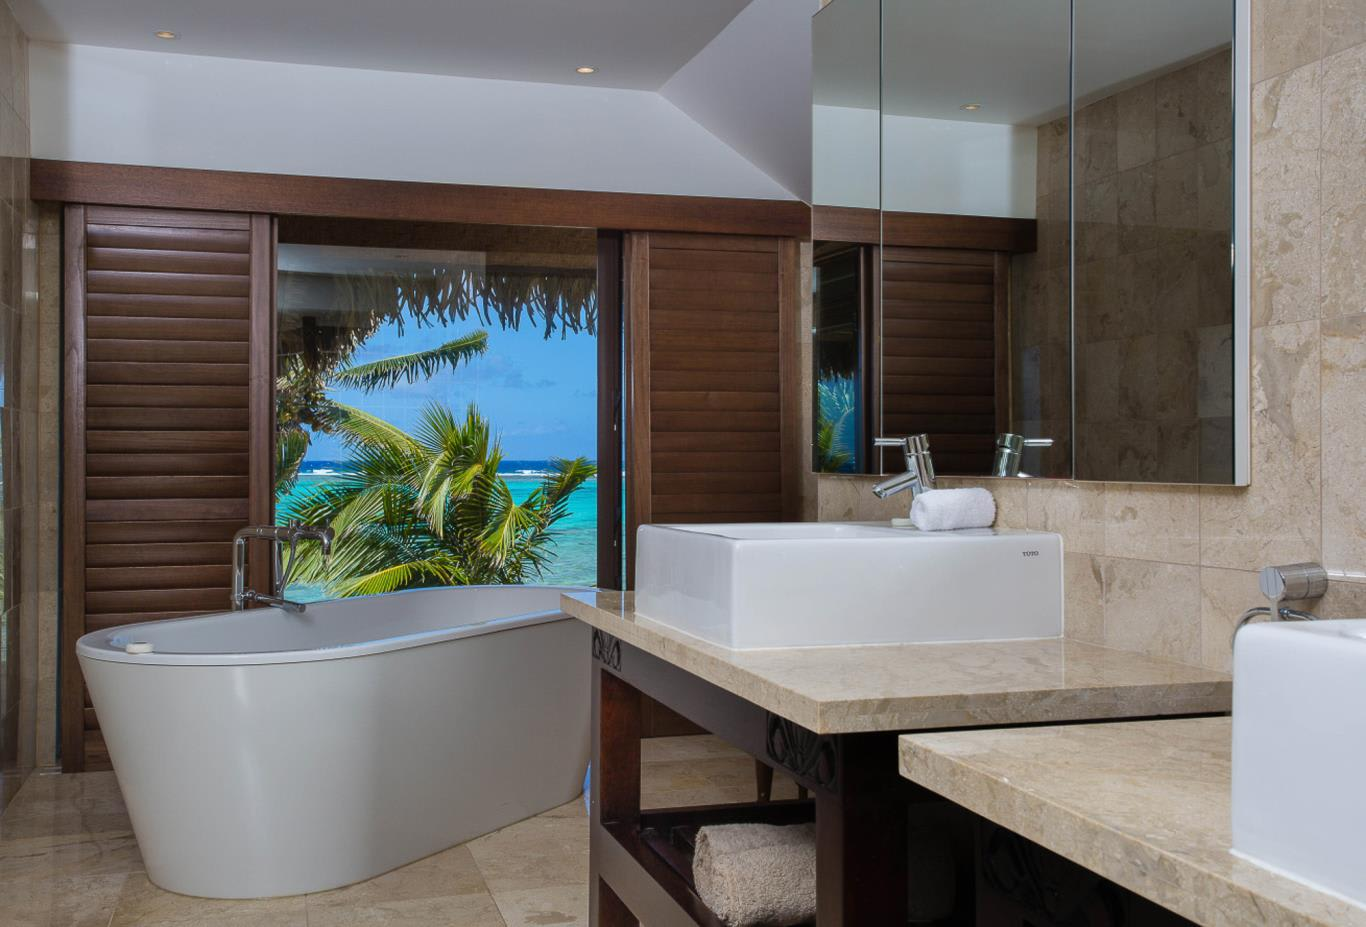 Presidential Beachfront Villa Bathroom